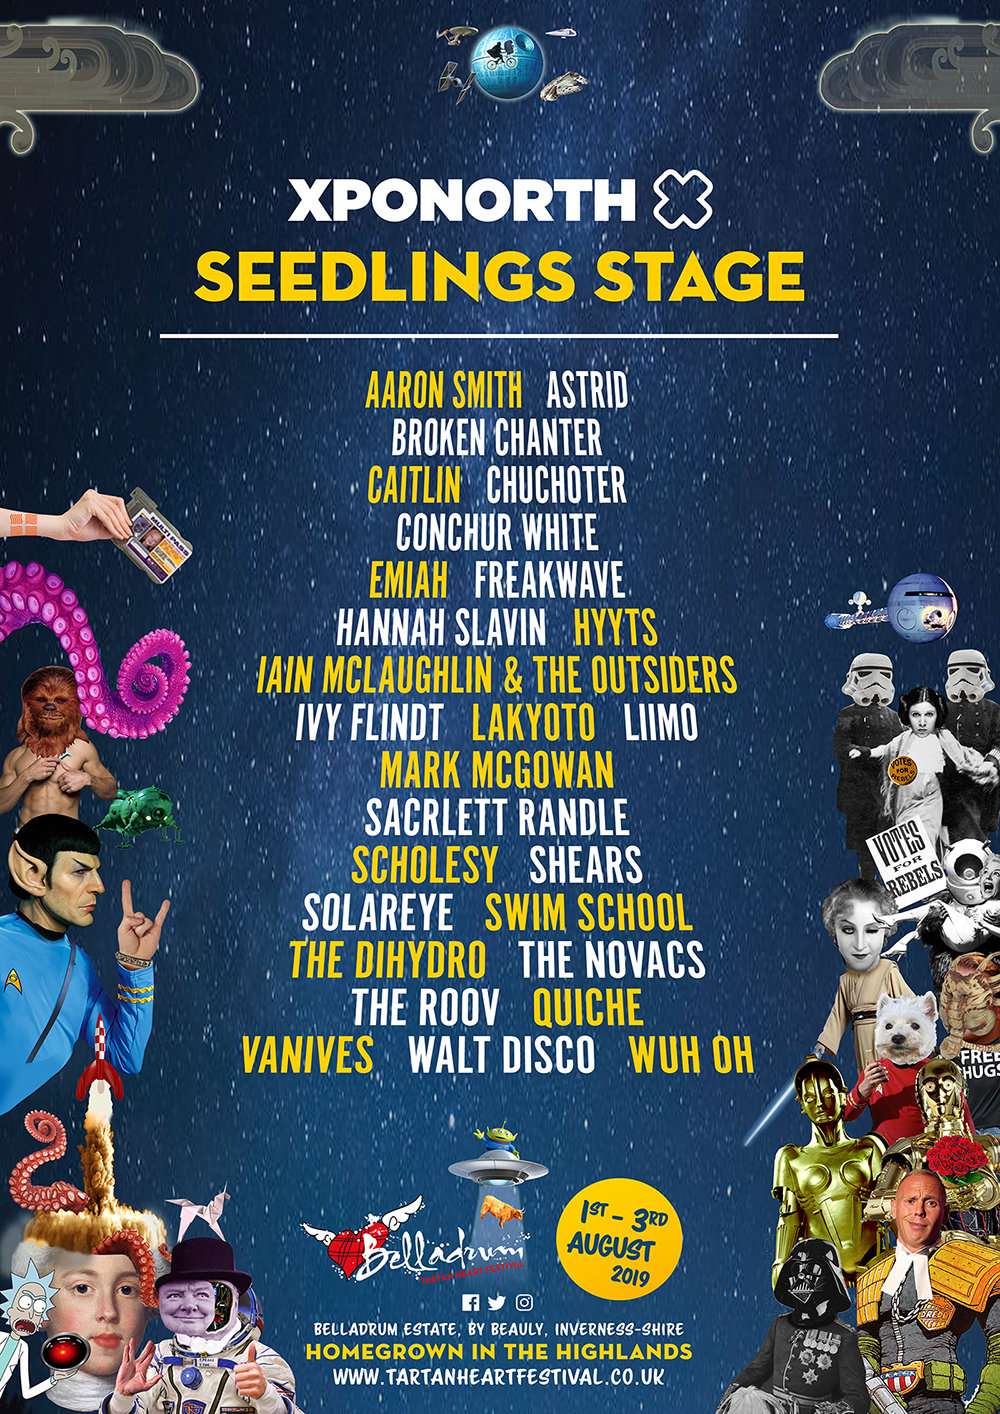 XPONORTH SEEDLINGS STAGE LINE-UP ANNOUNCED FOR BELLADRUM